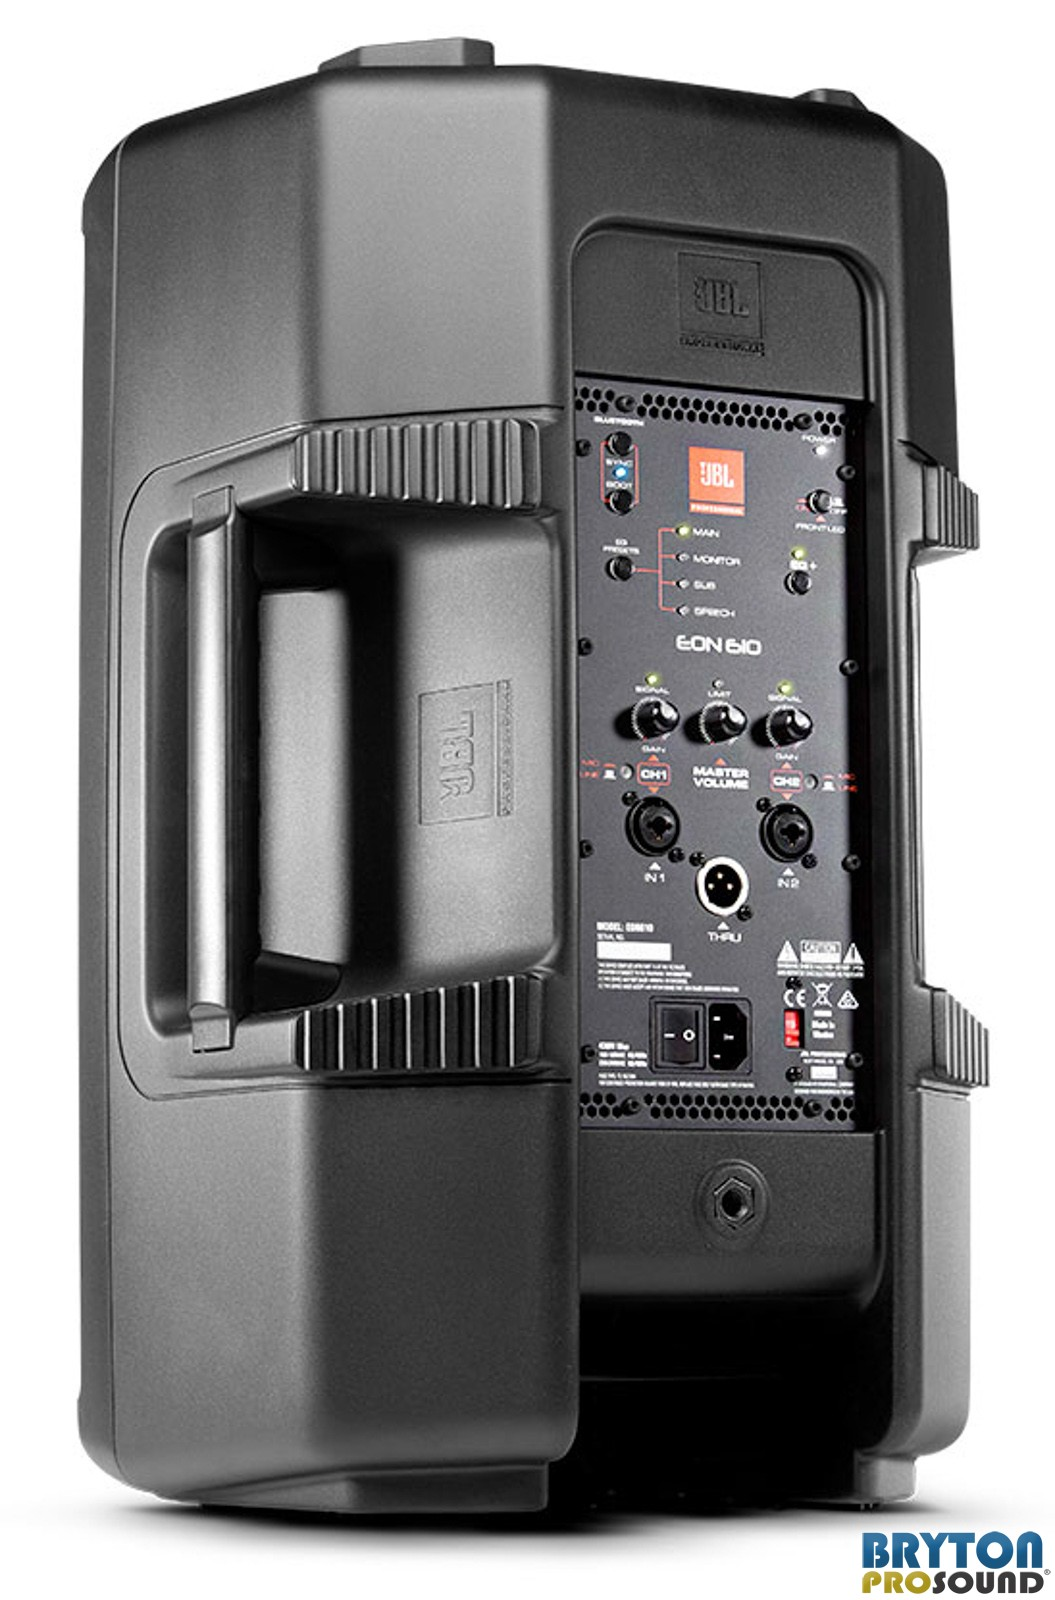 Yamaha Mg10xu Mixer With Jbl Eon610 Speakers More Portable Live Zoom